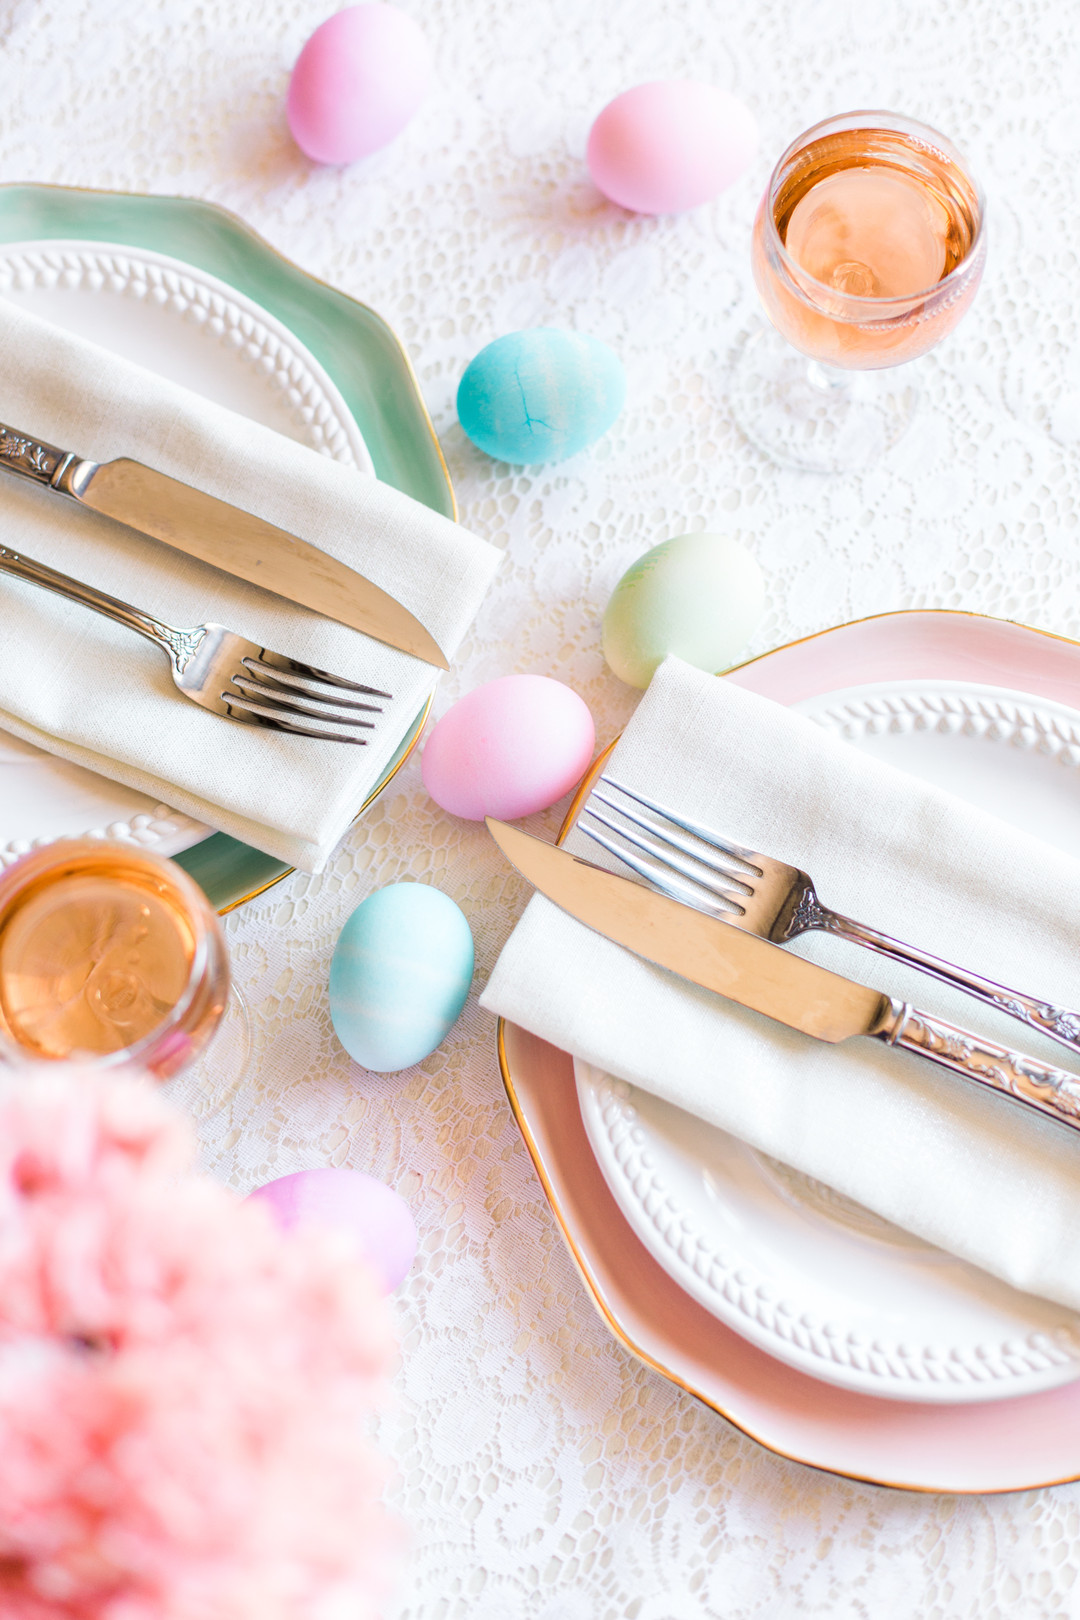 Staal_KristinaStaalPhotography_KristinaStaalPhotographyEasterTablescape201629_big Easy Entertaining: Easter Brunch Inspiration for Two